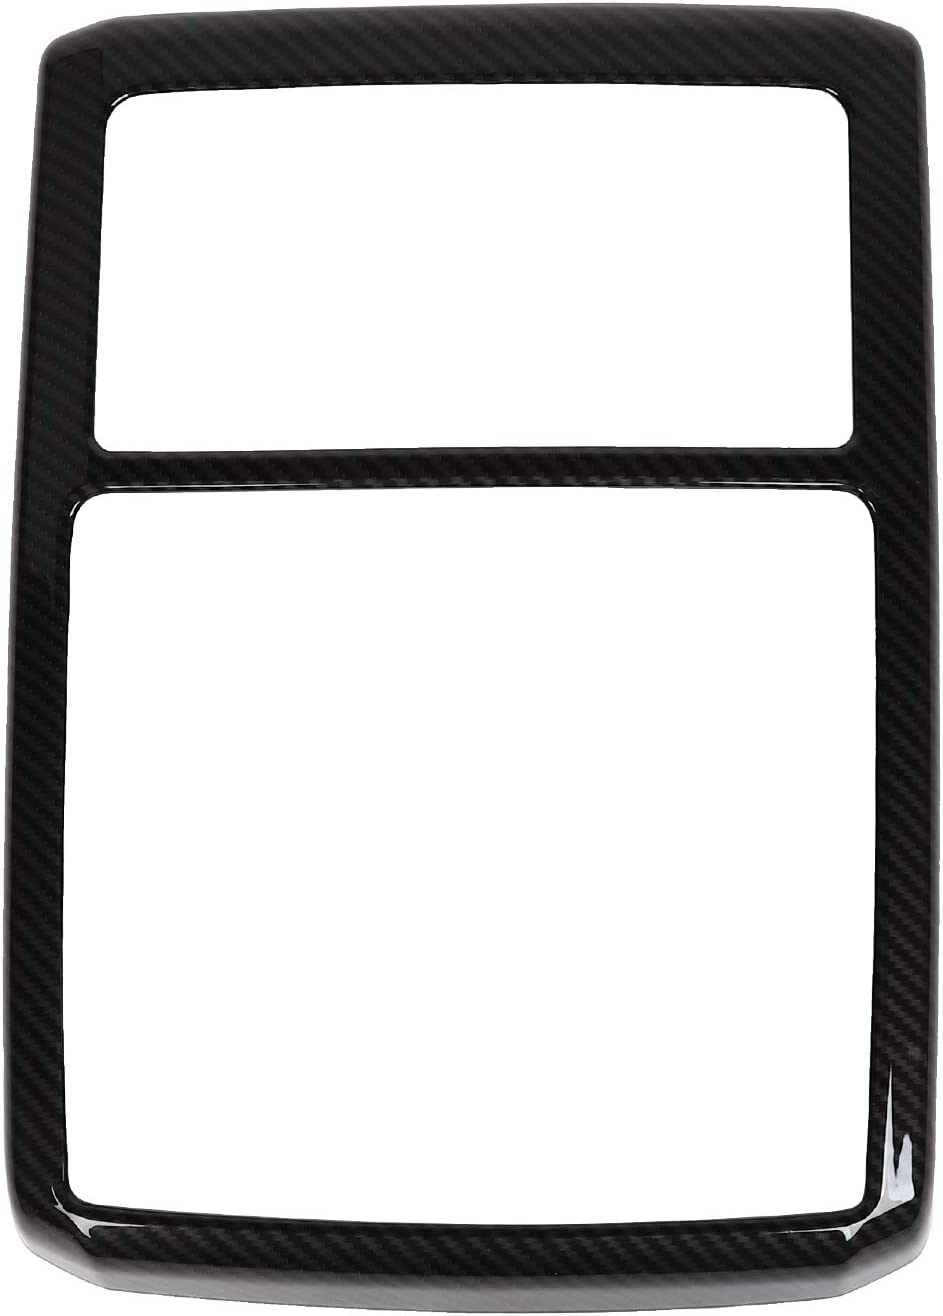 1998 1995 1994 1997 1993 1996 GGBAILEY D3016A-F1A-BLK/_BR Custom Fit Automotive Carpet Floor Mats for 1992 1999 GMC Yukon Black with Red Edging Driver /& Passenger